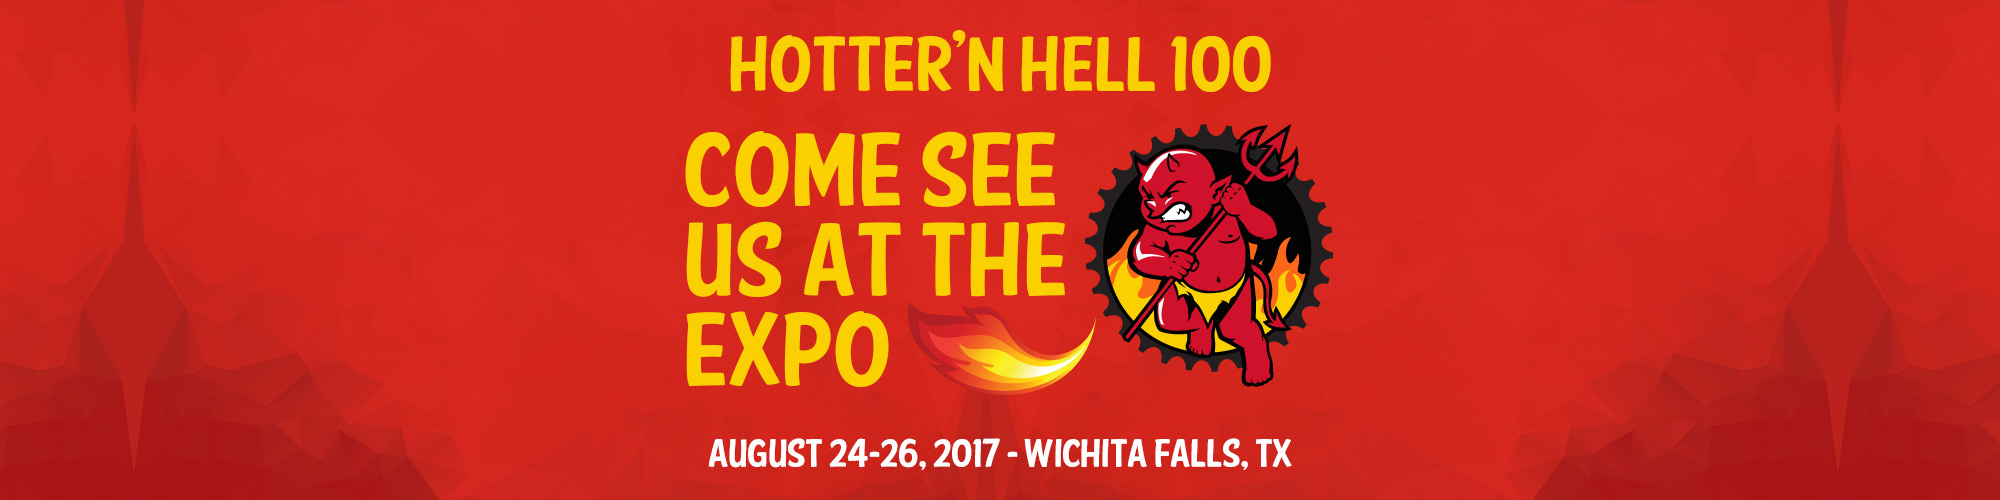 Hotter'N Hell 100. Come See Us At The Expo. August 24-25th, 2017 in Wichita Falls Tx.